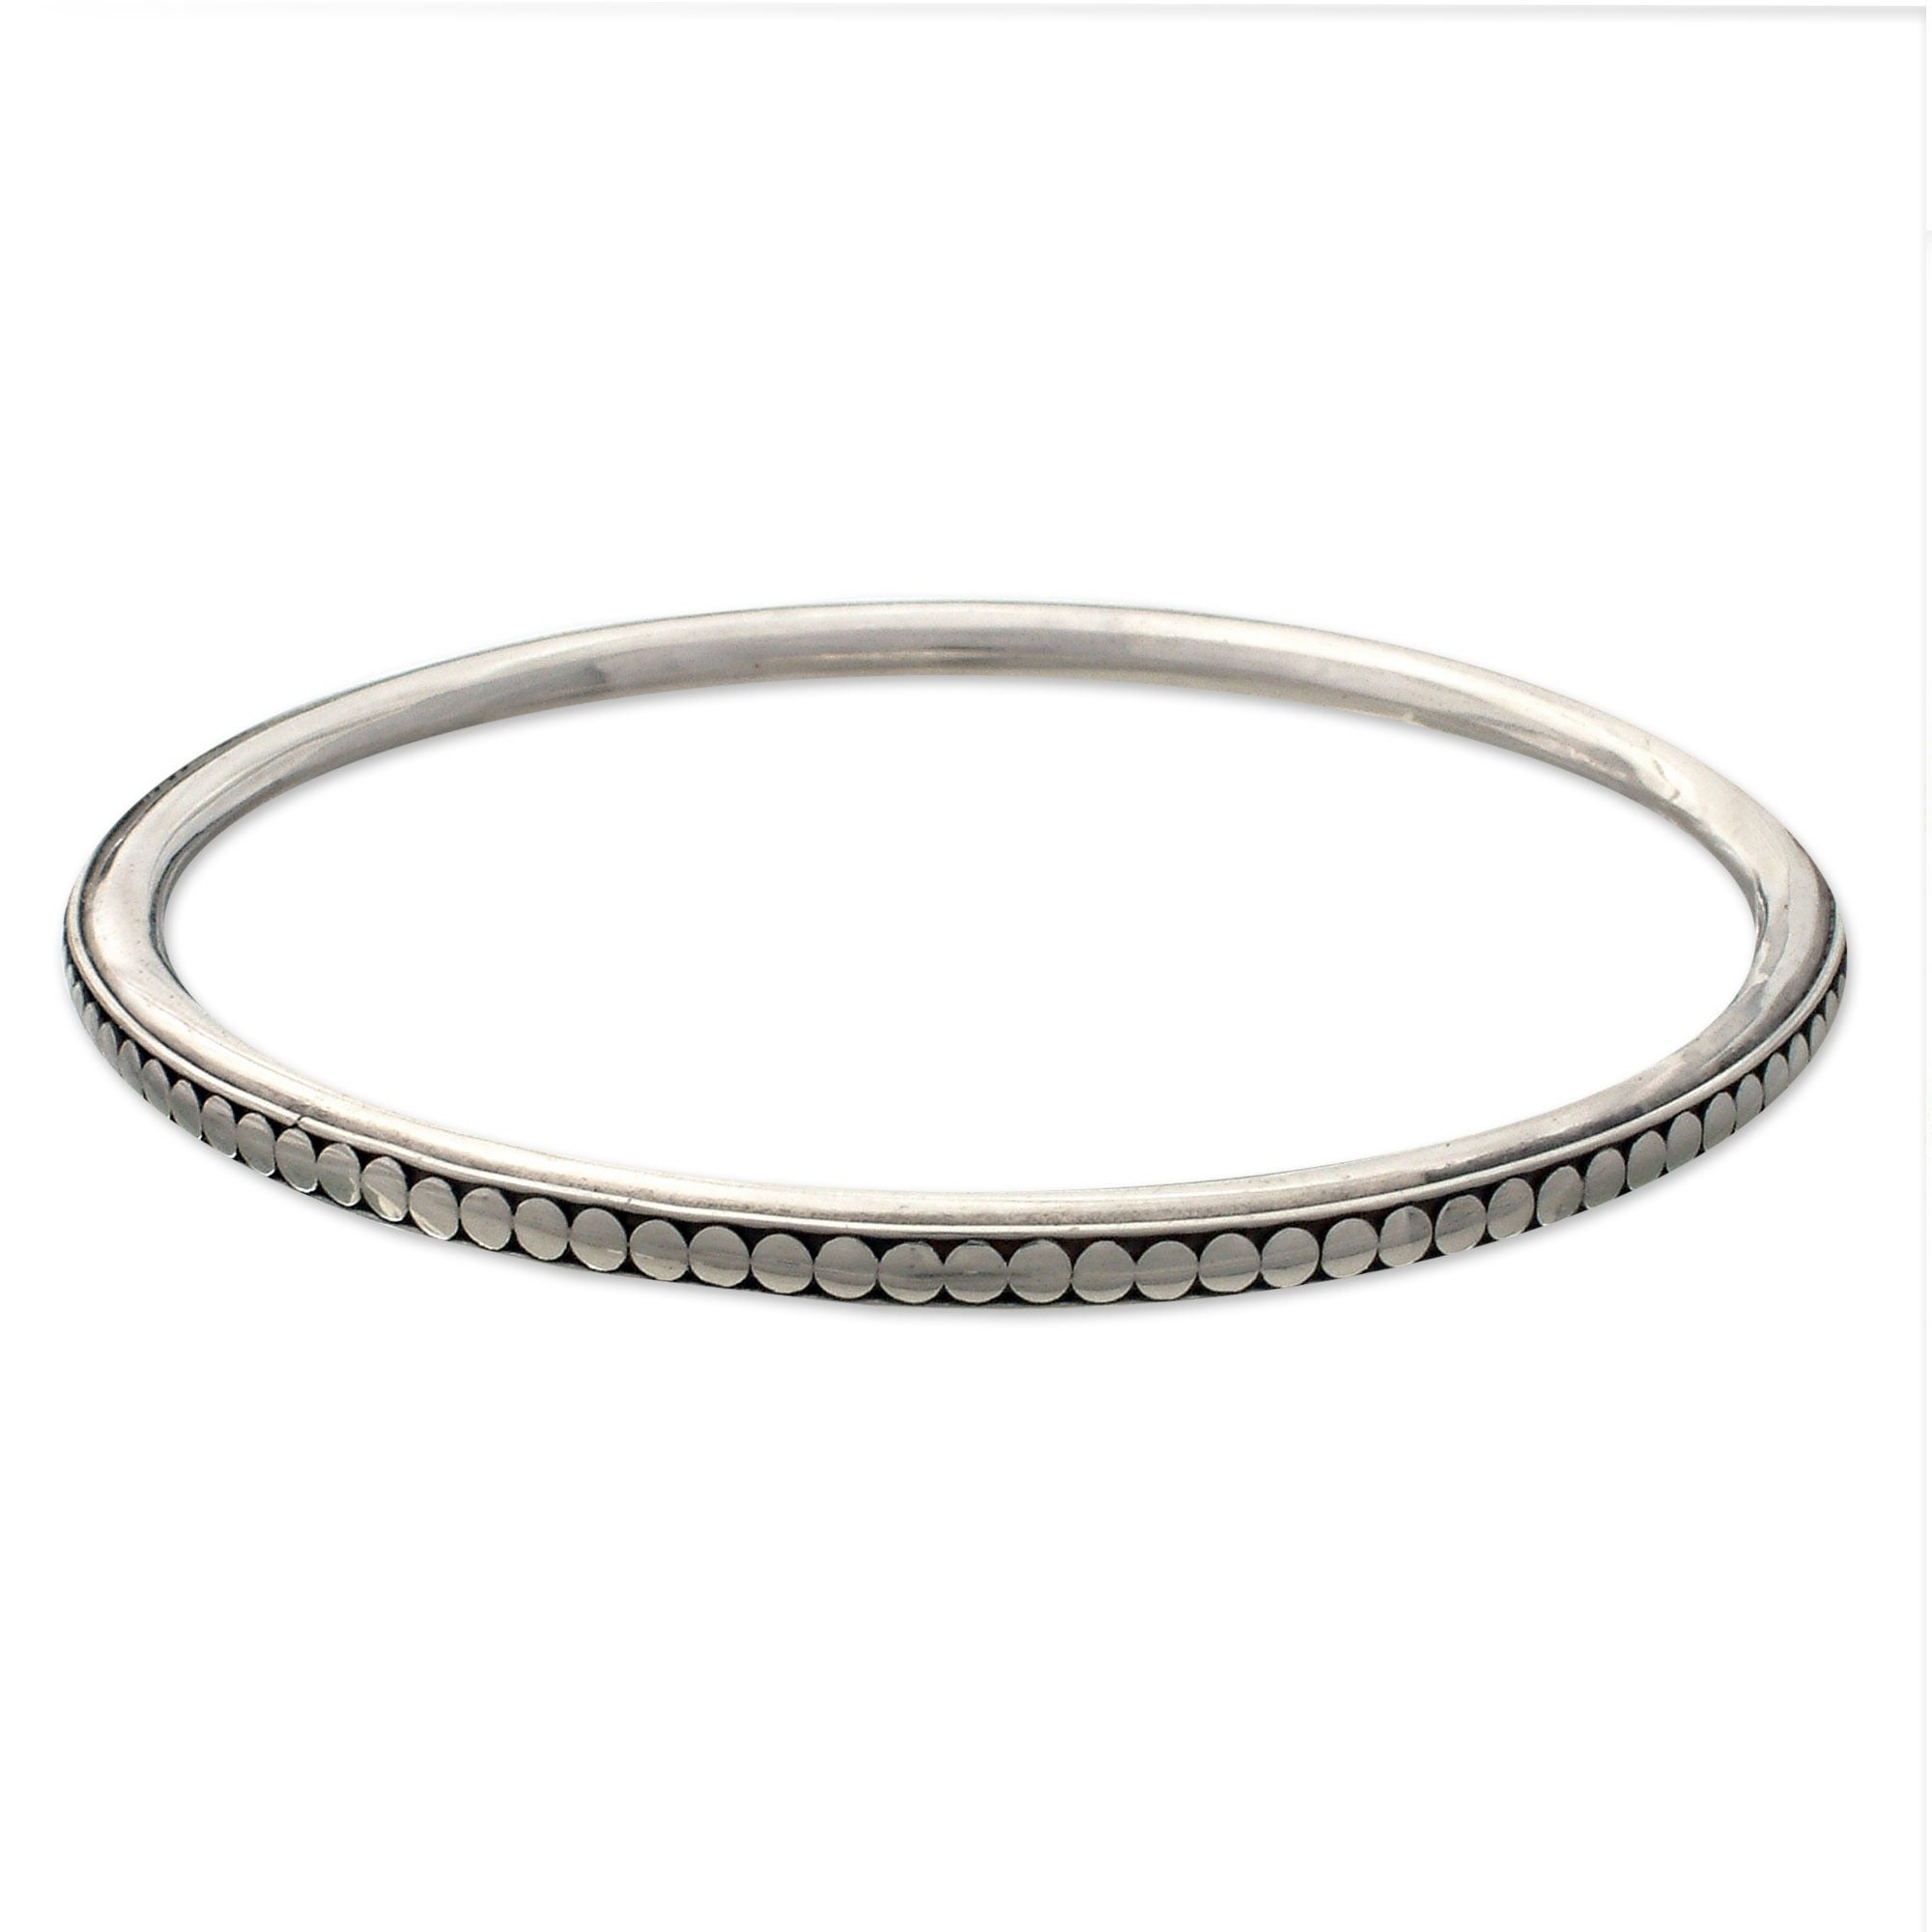 pin small bangle handmade simple clasp bracelets silver hammered sterling bangles bracelet large solid understated